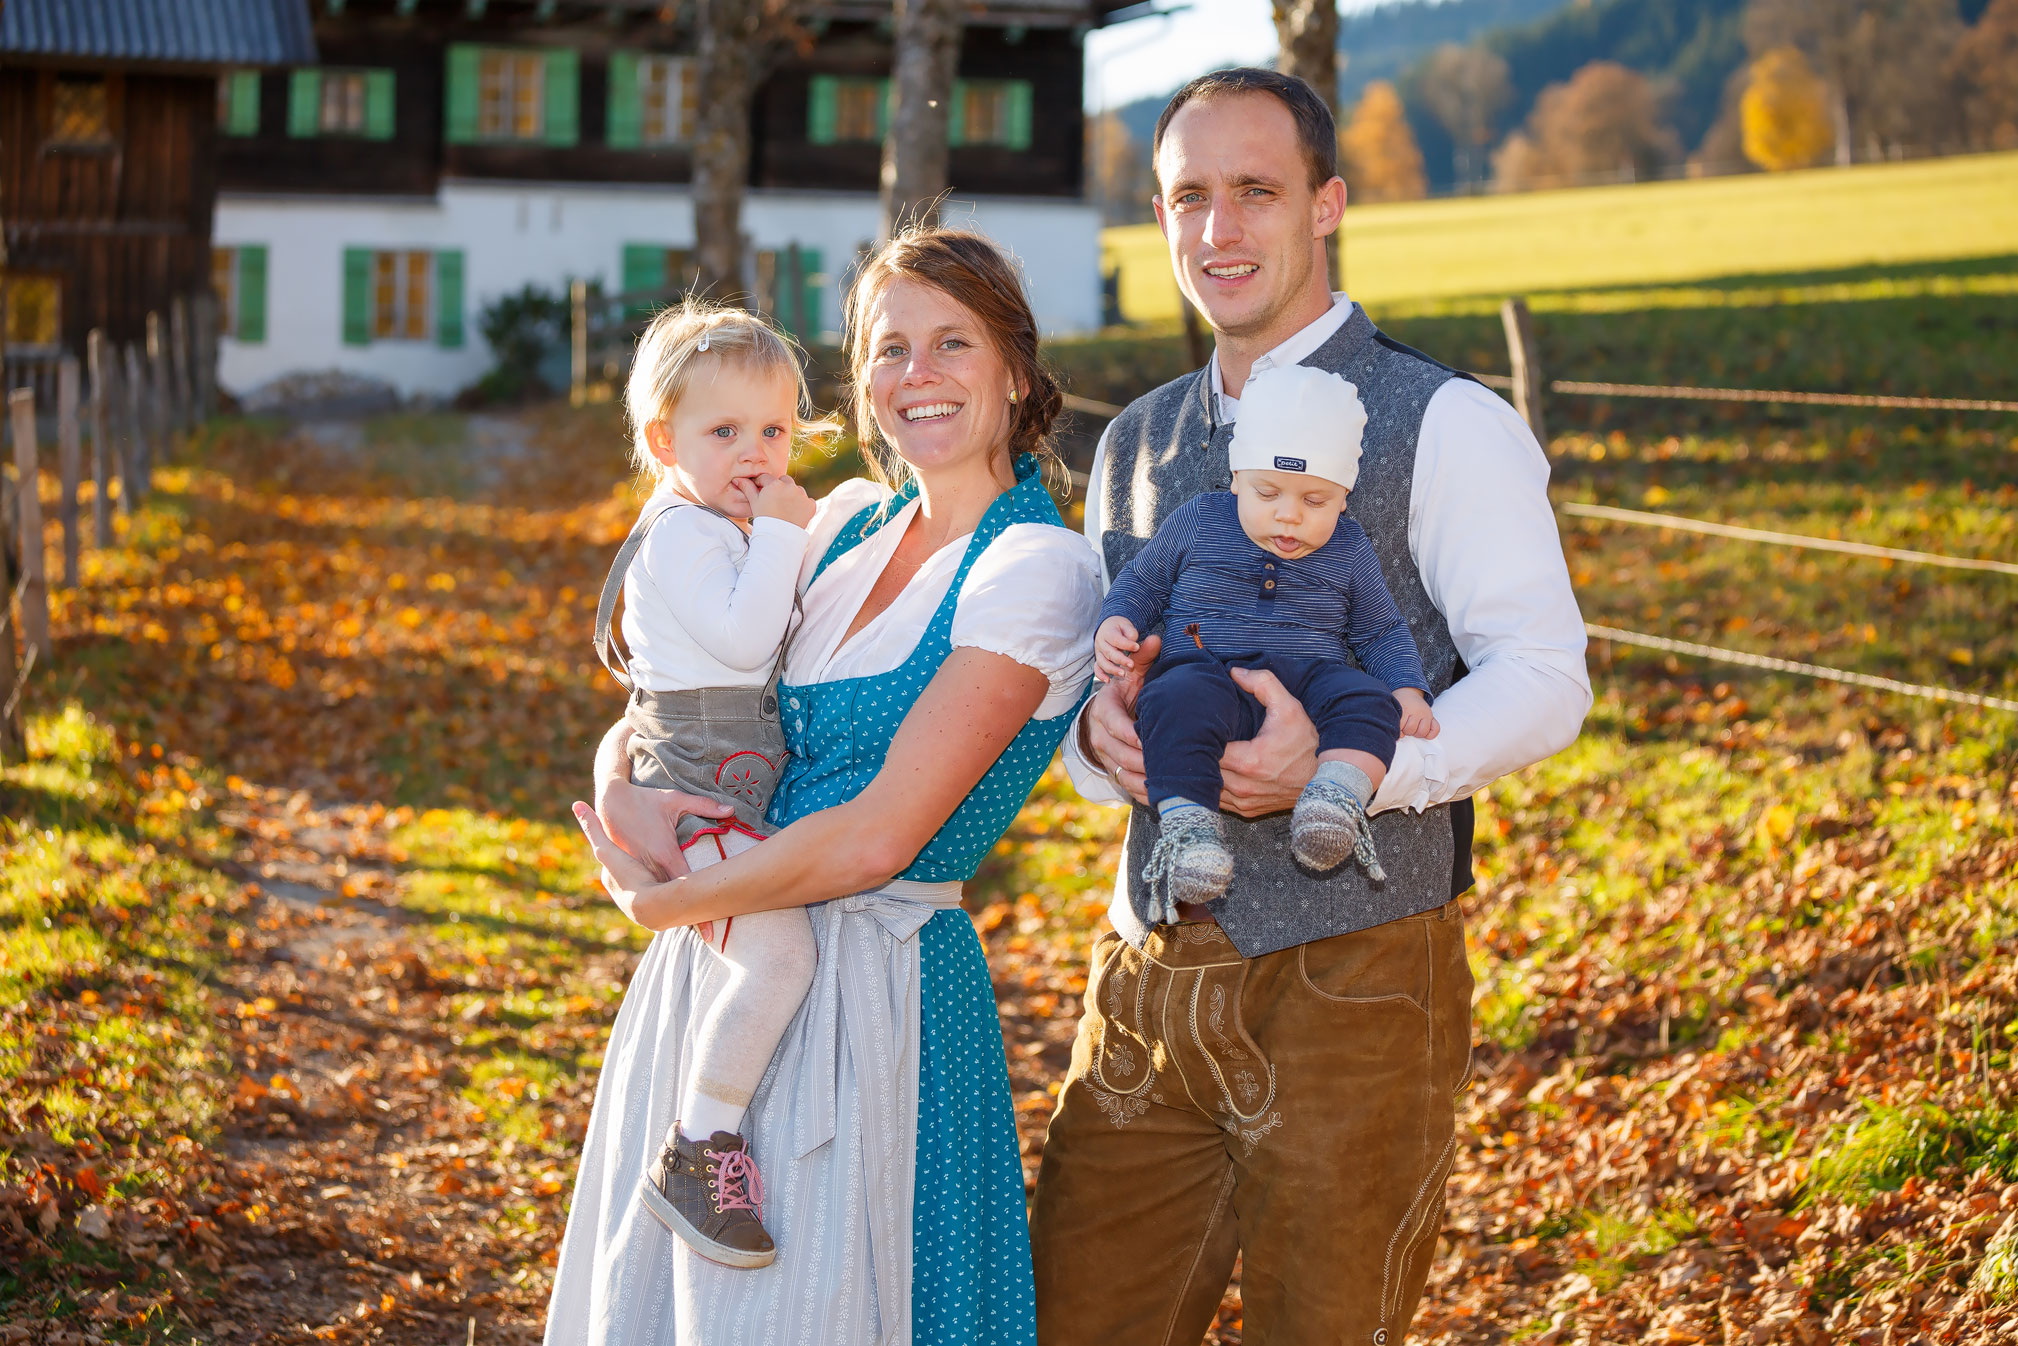 Familyshooting mit David, Debs, Ruby & Bennett am 01. 11. 2016